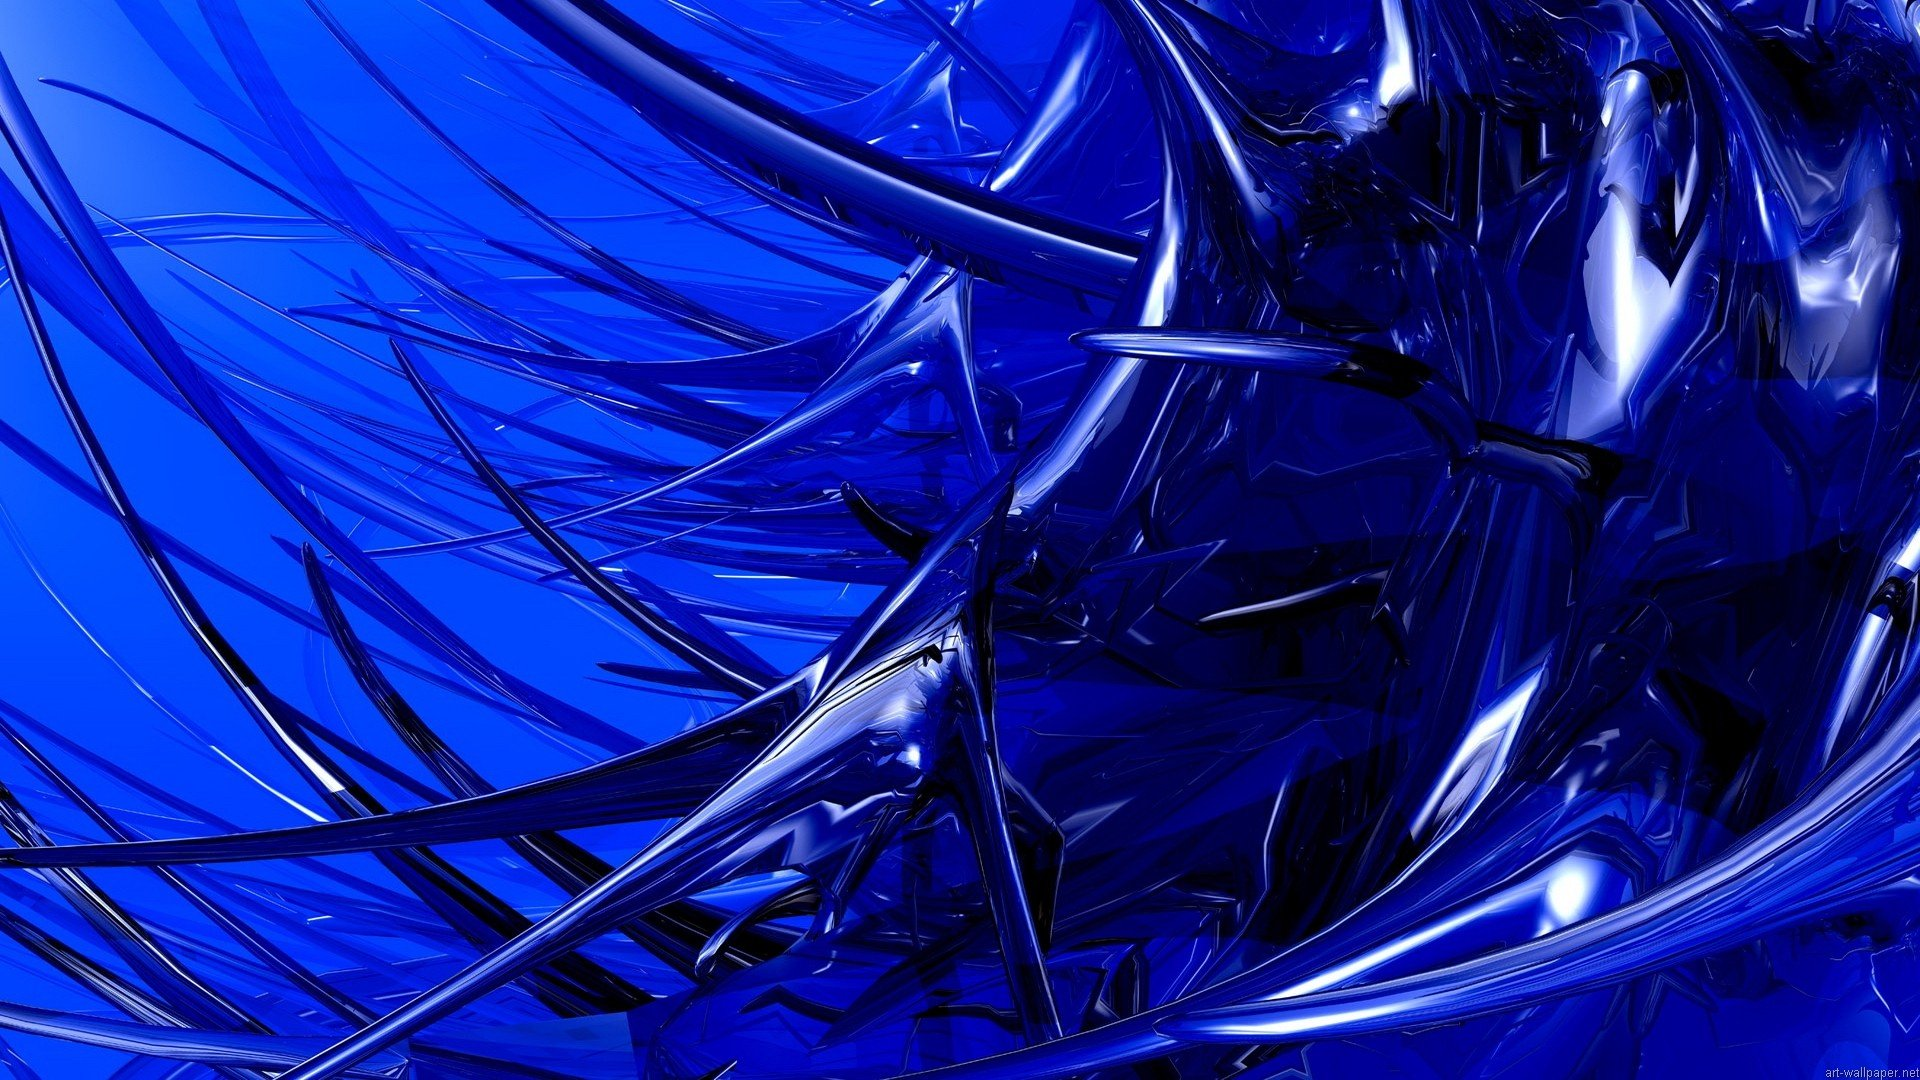 HD Wallpaper 1080p Blue - WallpaperSafari